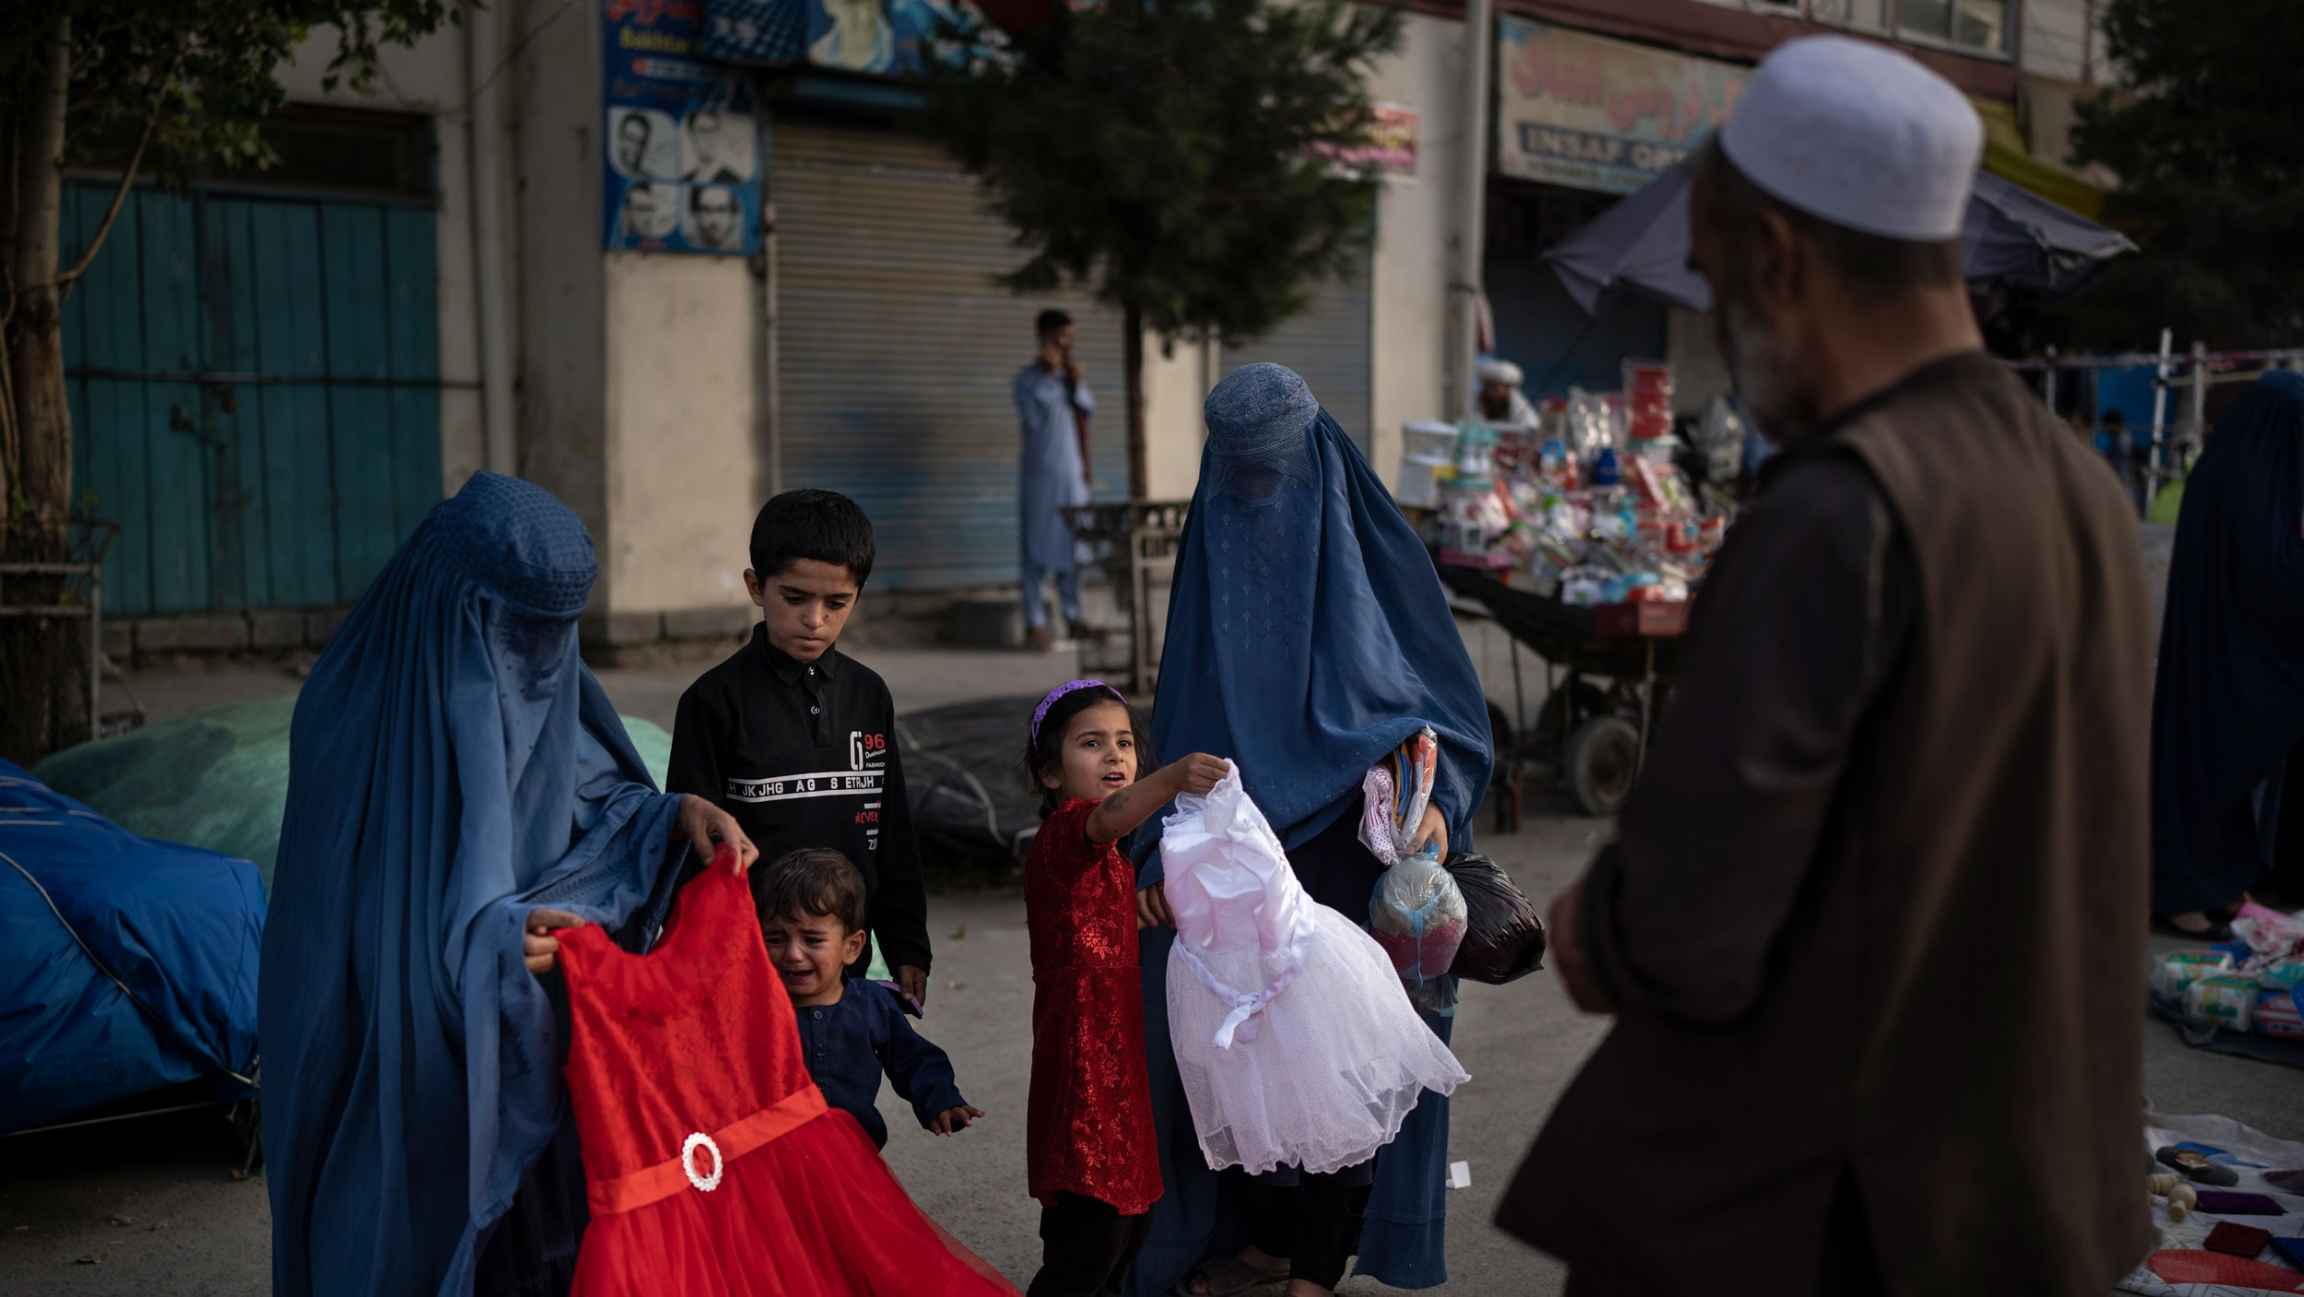 fghan women and a girl shop for dresses at a local market in Kabul, Afghanistan, Friday, Sept. 10, 2021.